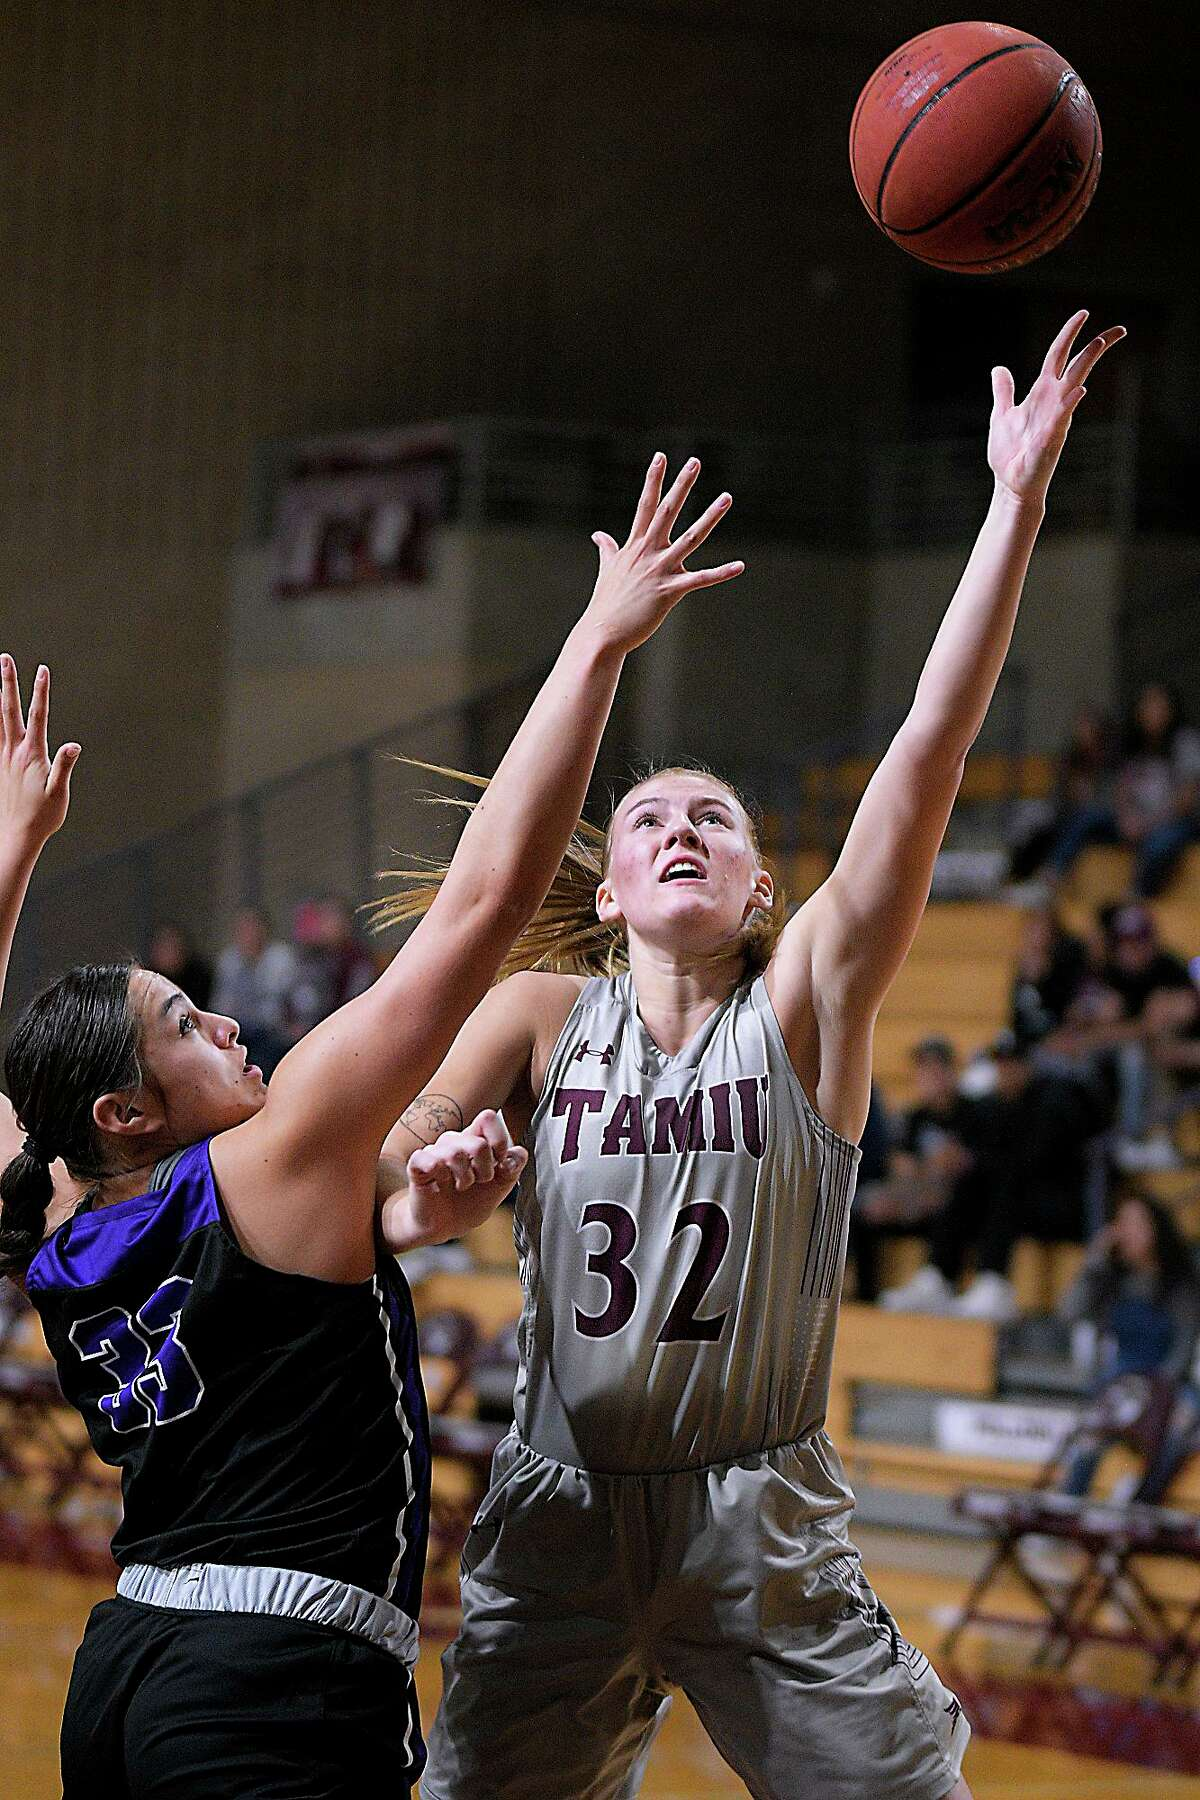 Josselin Geer and TAMIU are hosting Kentucky State University at 5 p.m. Sunday and 1 p.m. Monday.